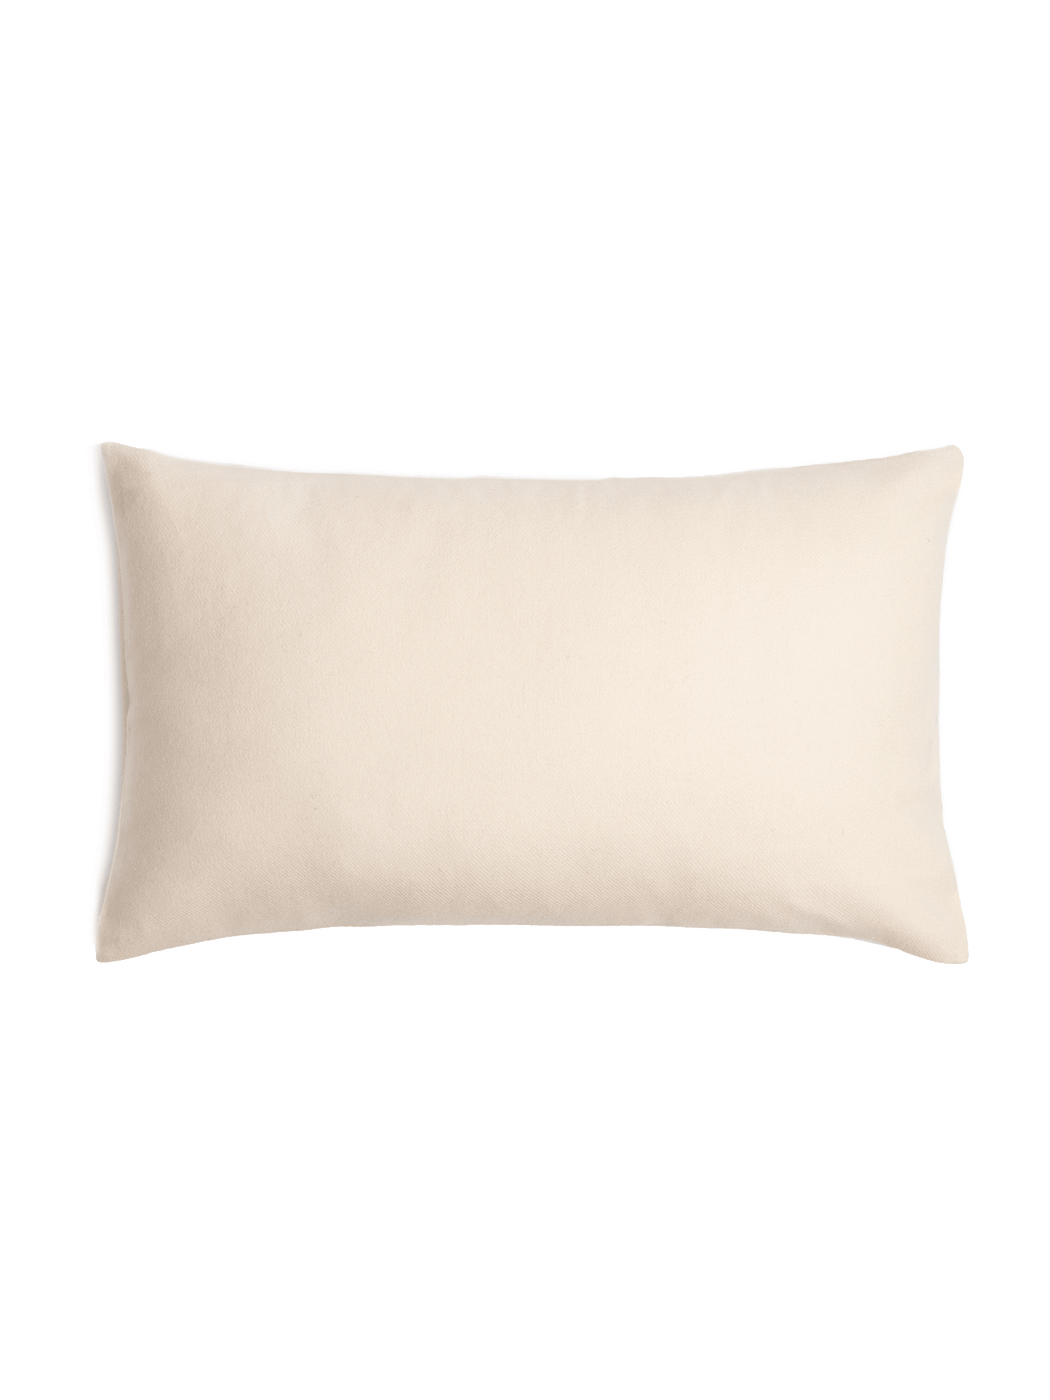 Cashmere Pillow Cover - Ivory